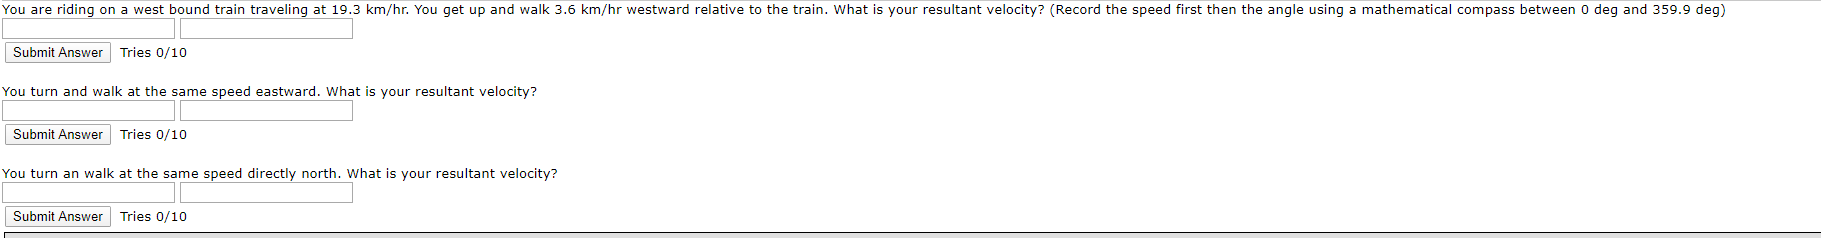 You are riding on a west bound train traveling at 19.3 km/hr. You get up and walk 3.6 km/hr westward relative to the train. What is your resultant velocity? (Record the speed first then the angle using a mathematical compass between o deg and 359.9 deg) Submit Answer Tries 0/10 You turn and walk at the same speed eastward. What is your resultant velocity? Submit Answer Tries 0/10 You turn an walk at the same speed directly north. What is your resultant velocity? Submit Answer Tries 0/10